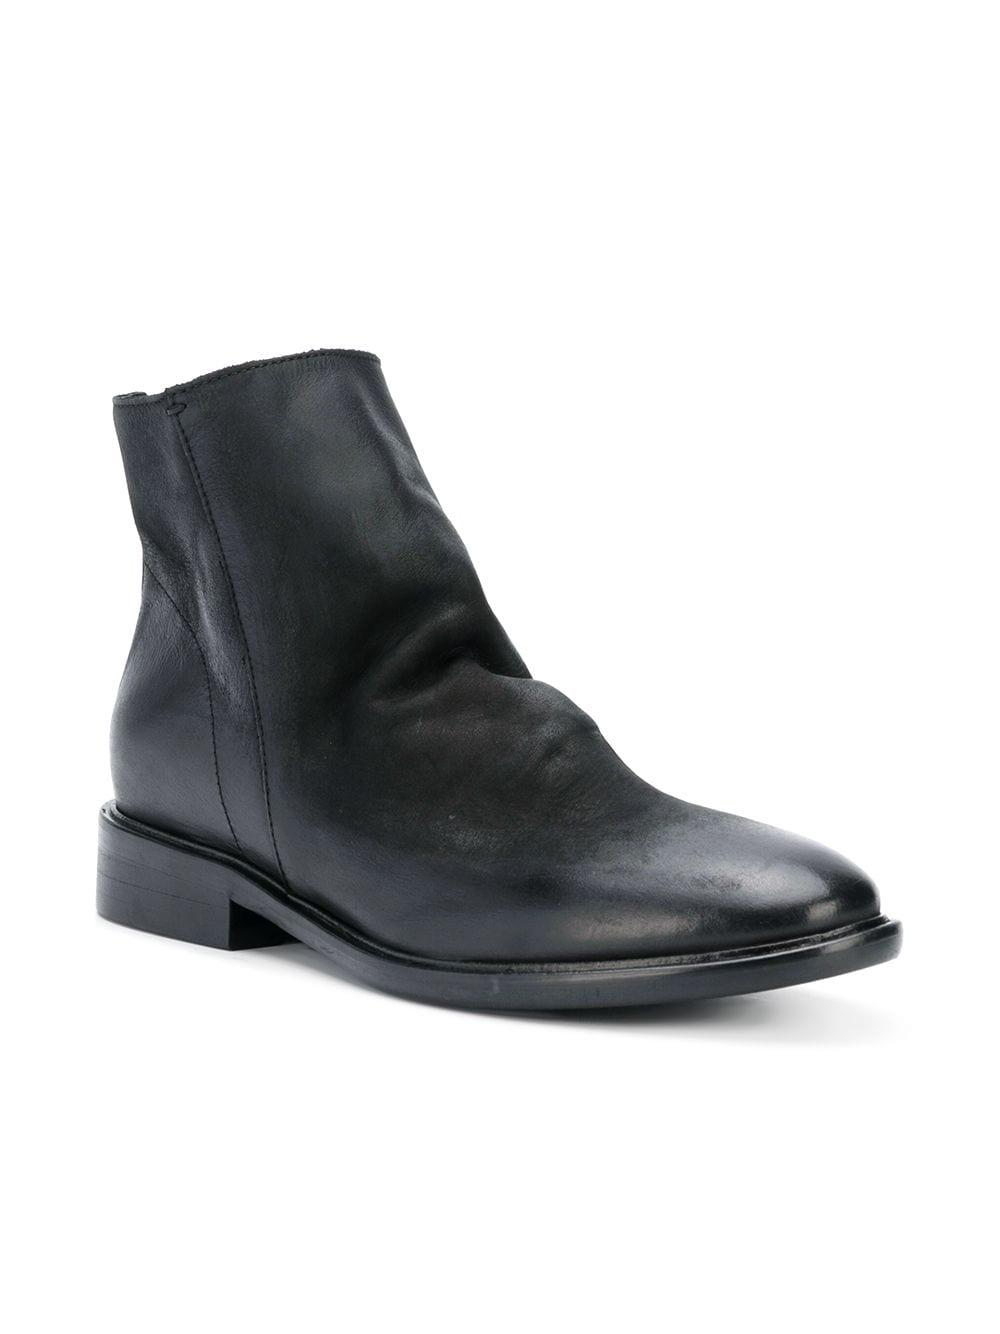 Strategia Leather Slouchy Ankle Boots in Black